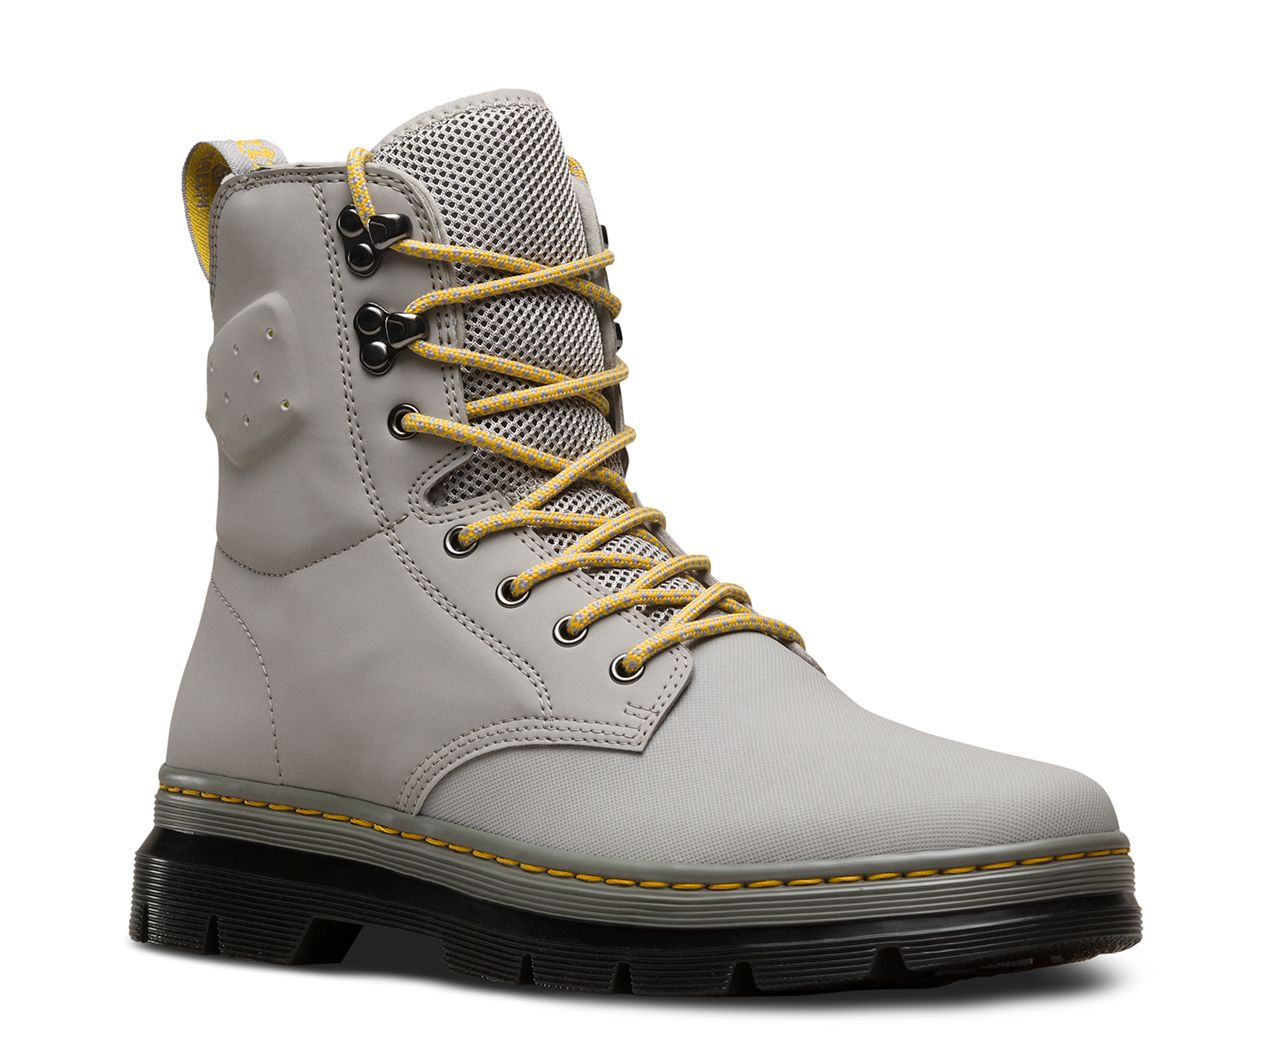 Synthetisch Leer Dr Martens Quinton Fashion Pinterest Dr Martens Unisex And